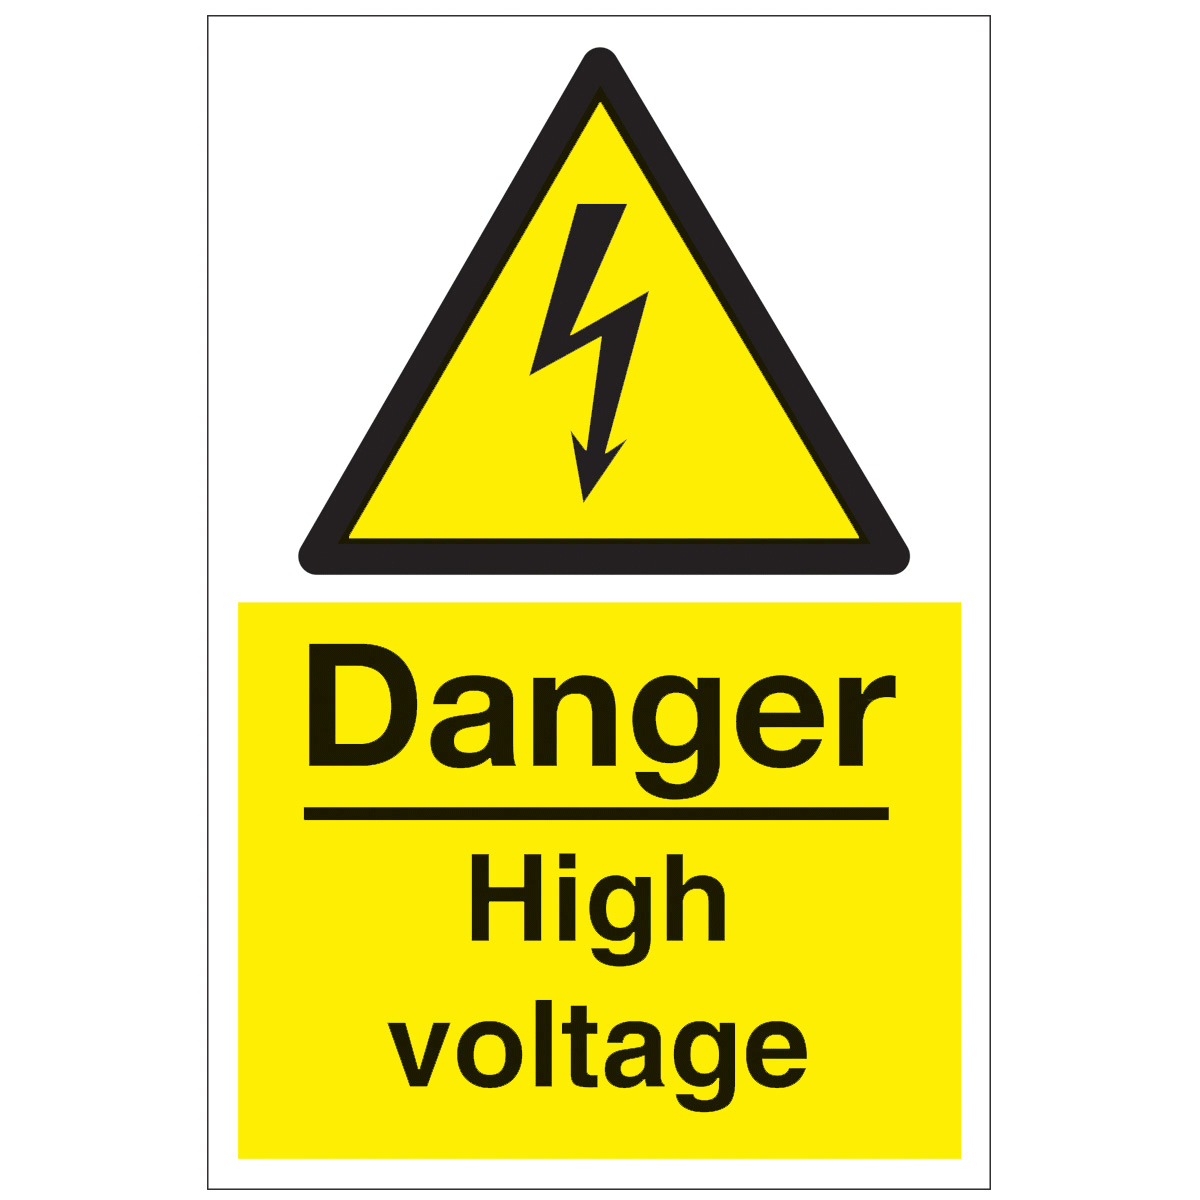 Clipart danger high voltage.